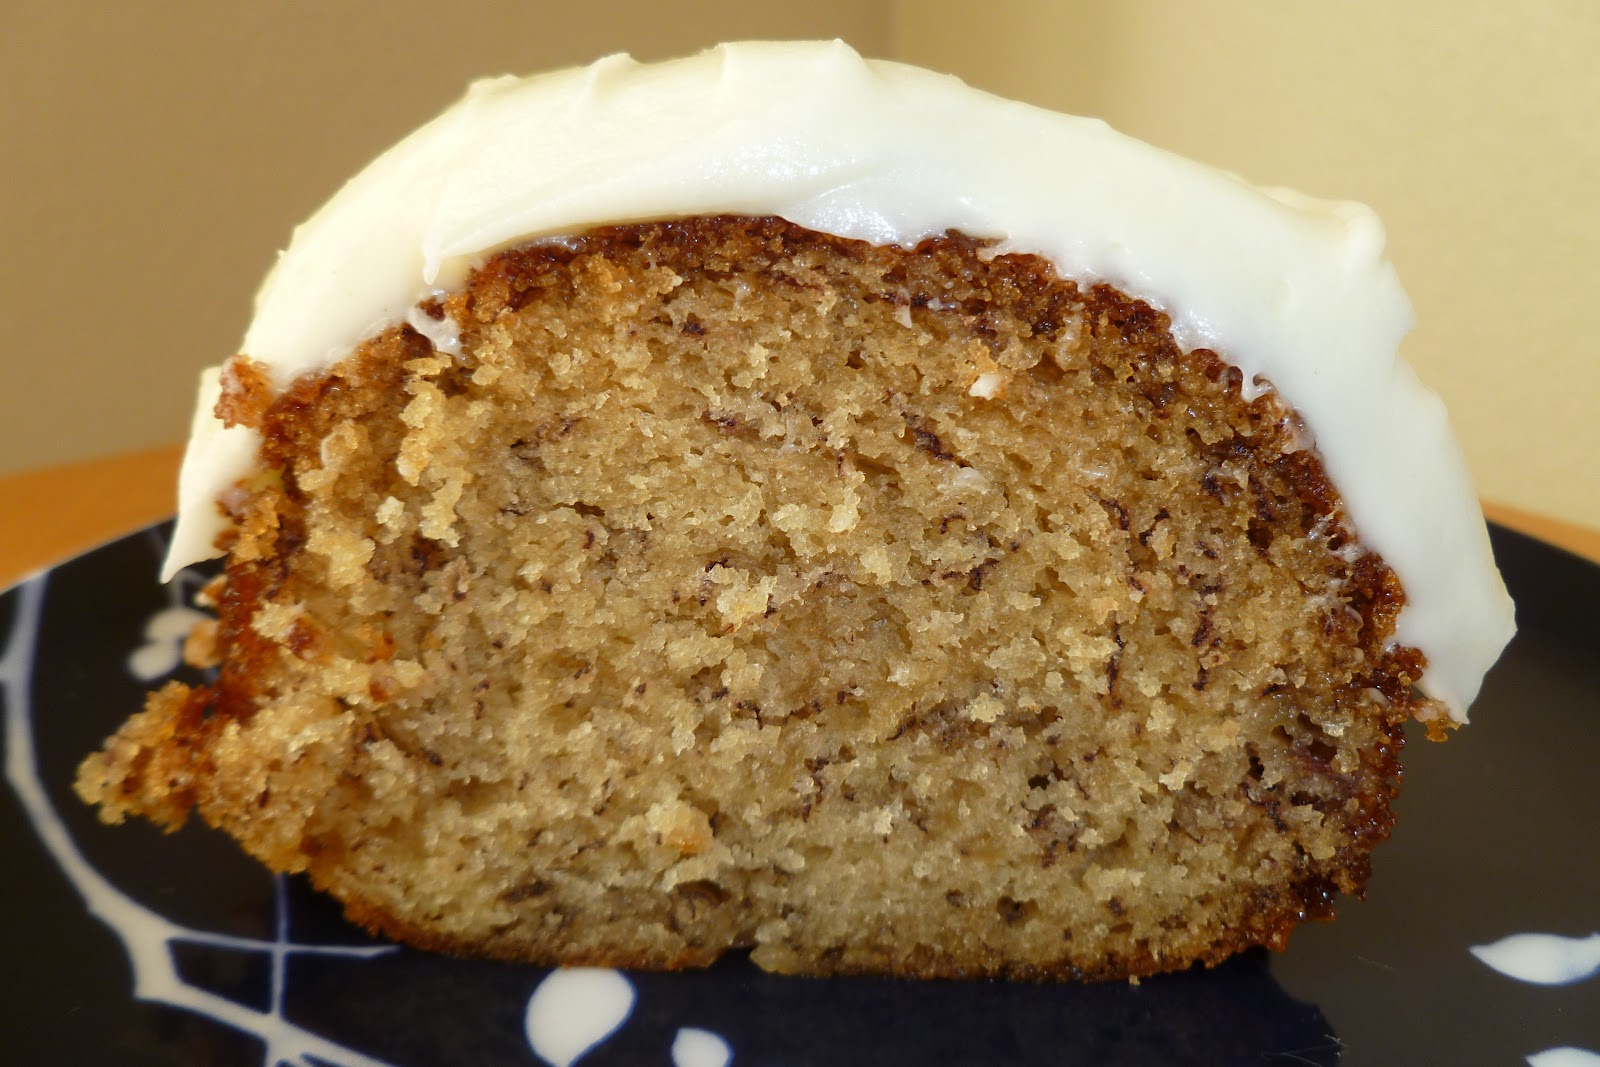 The Pastry Chef's Baking: Sweet Buttermilk Banana Cake